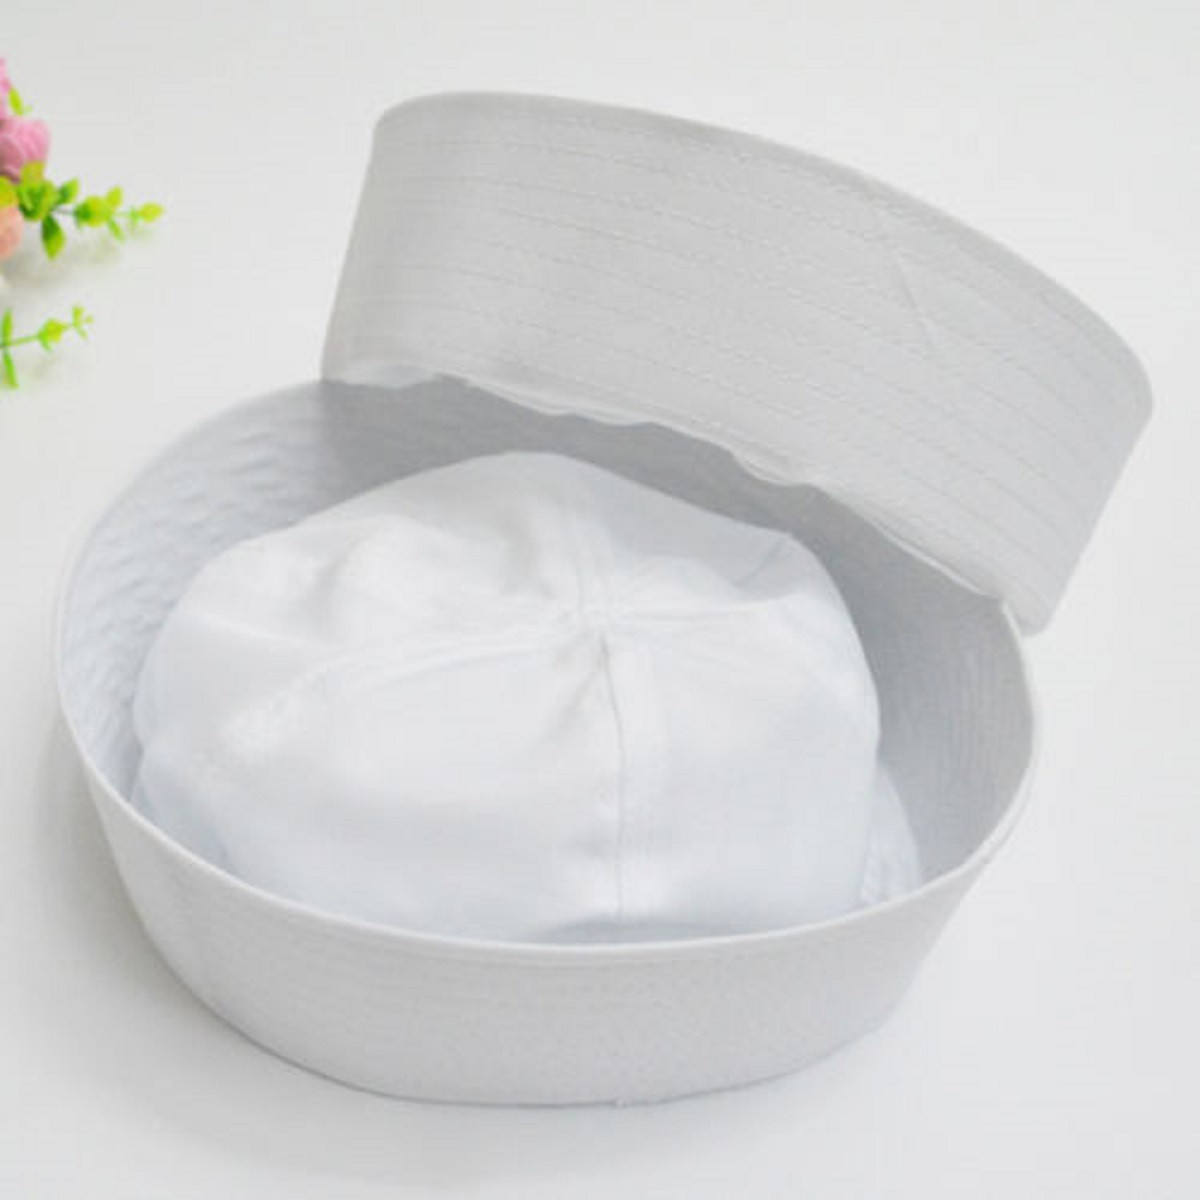 White Sailor Navy Hat Cap With Anchor For Fancy Dress Sailor Marine Military Cap Hat For Adults And Children